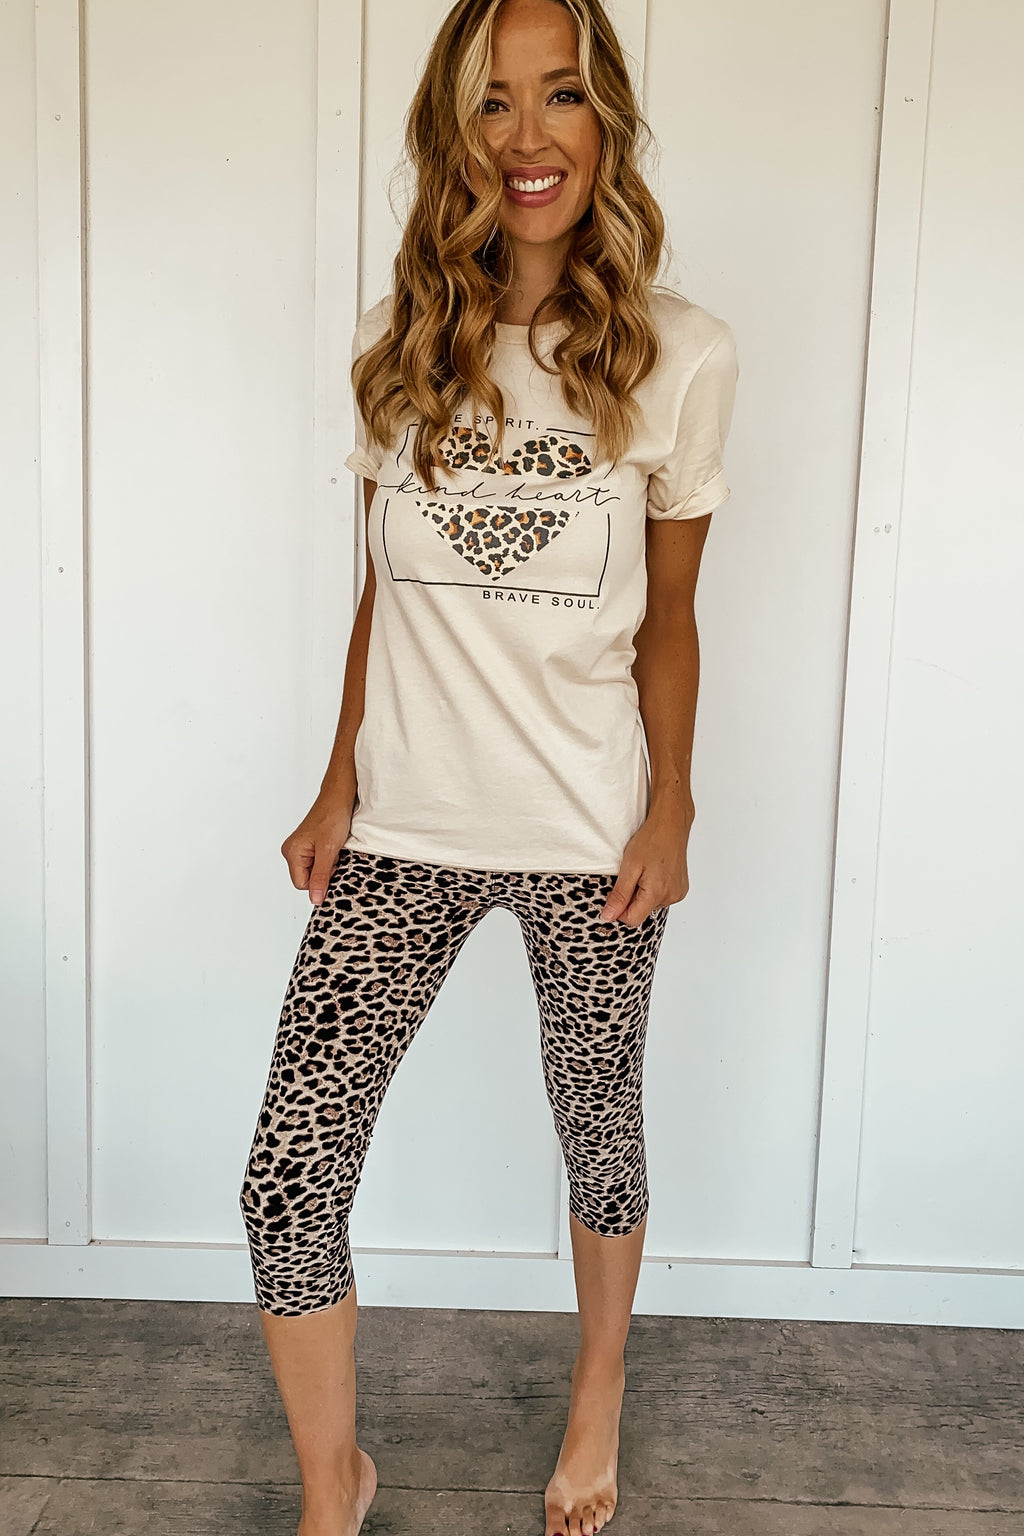 Spirit Heart Soul Tee - LURE Boutique